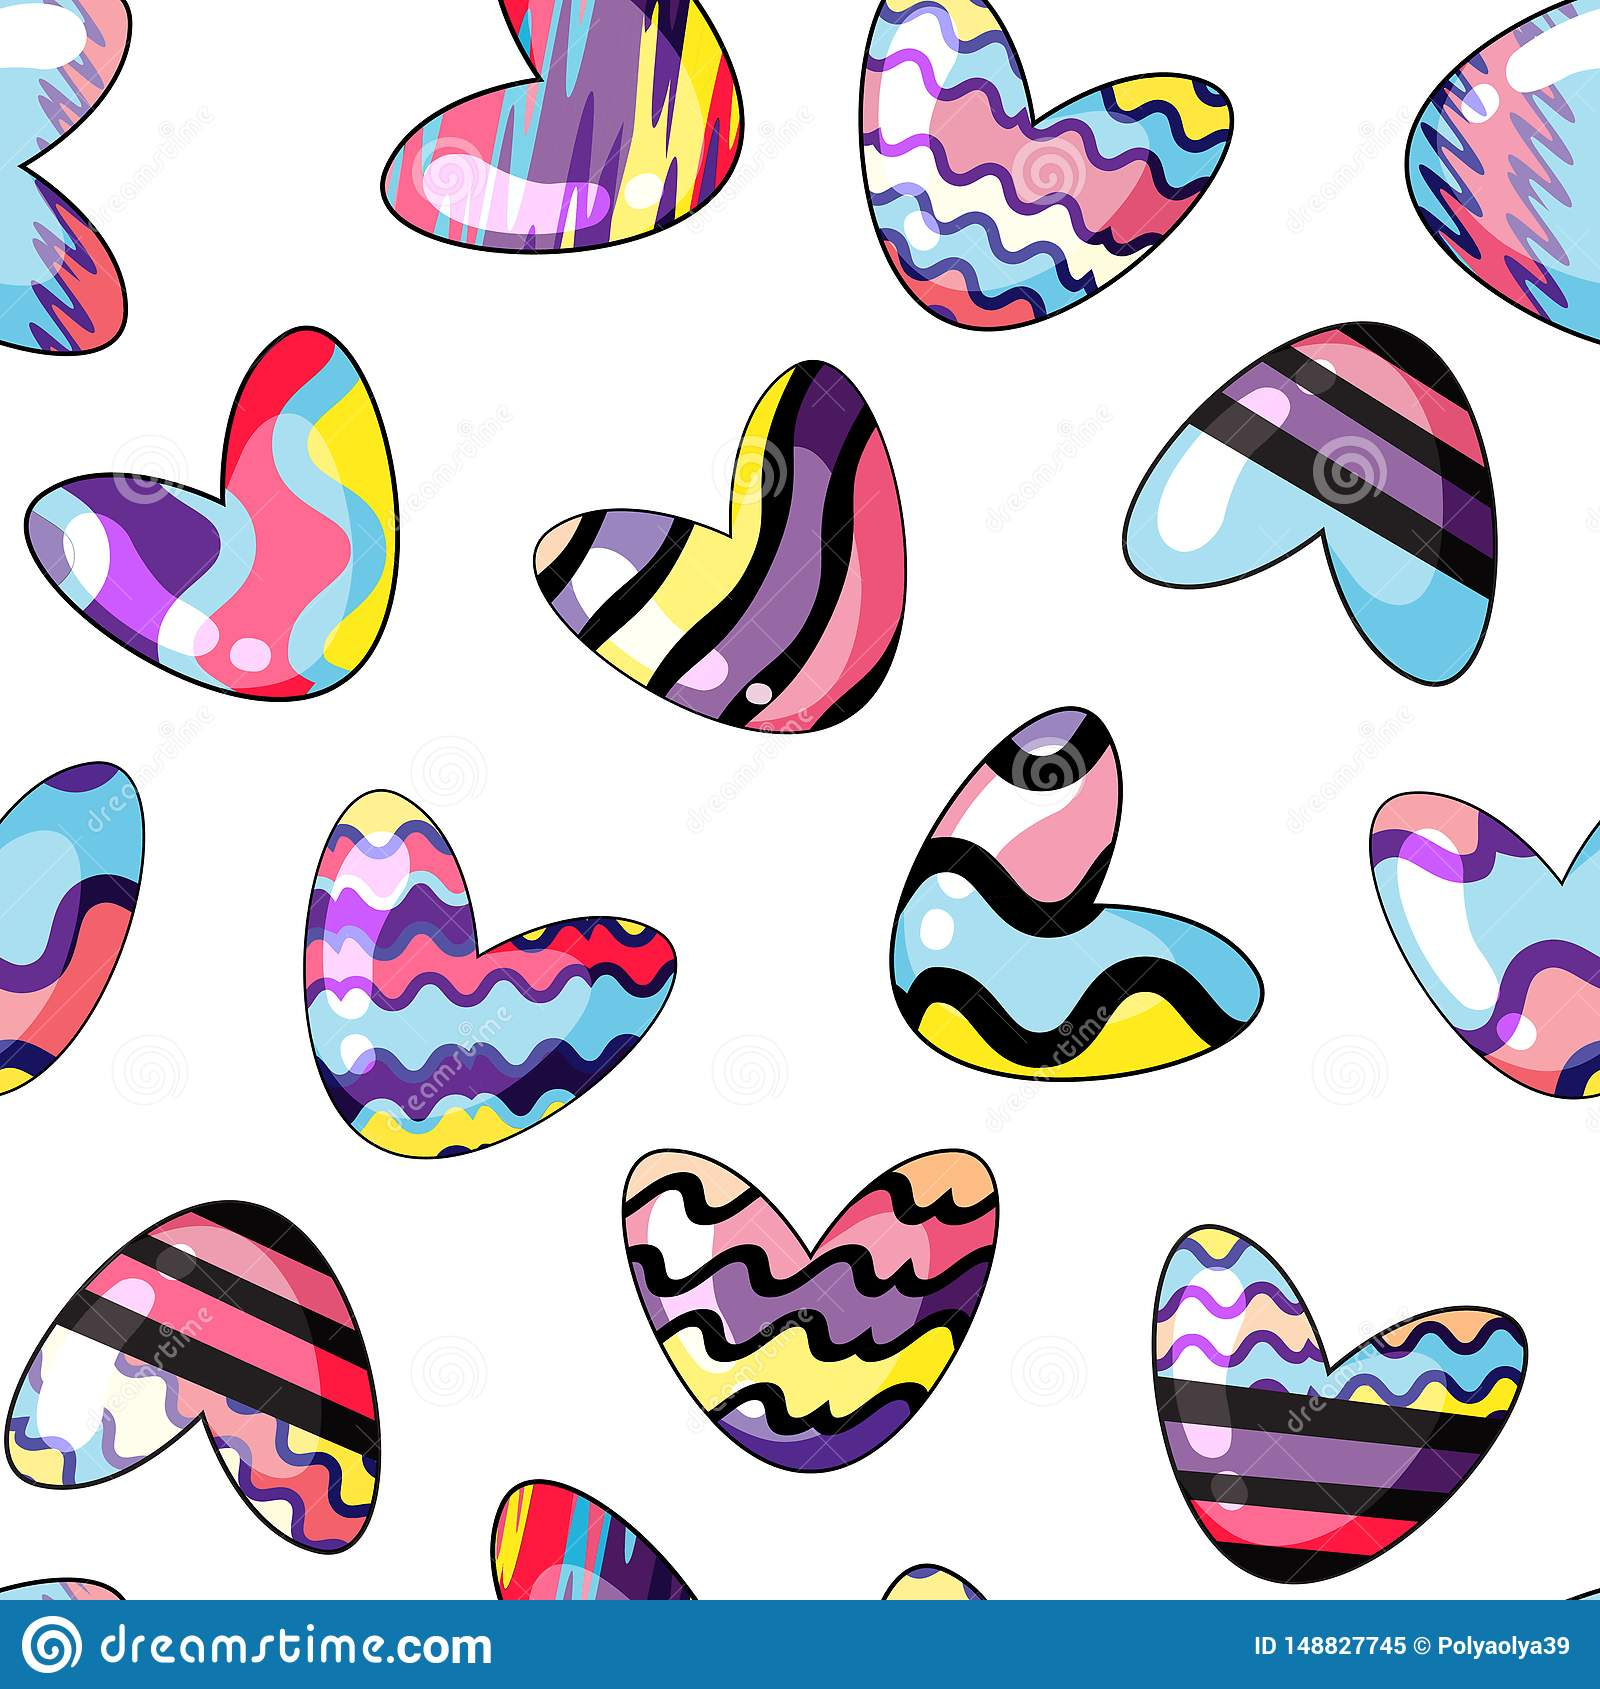 Vector illustration. Seamless pattern with cute hearts painted in rainbow colors on transparent background